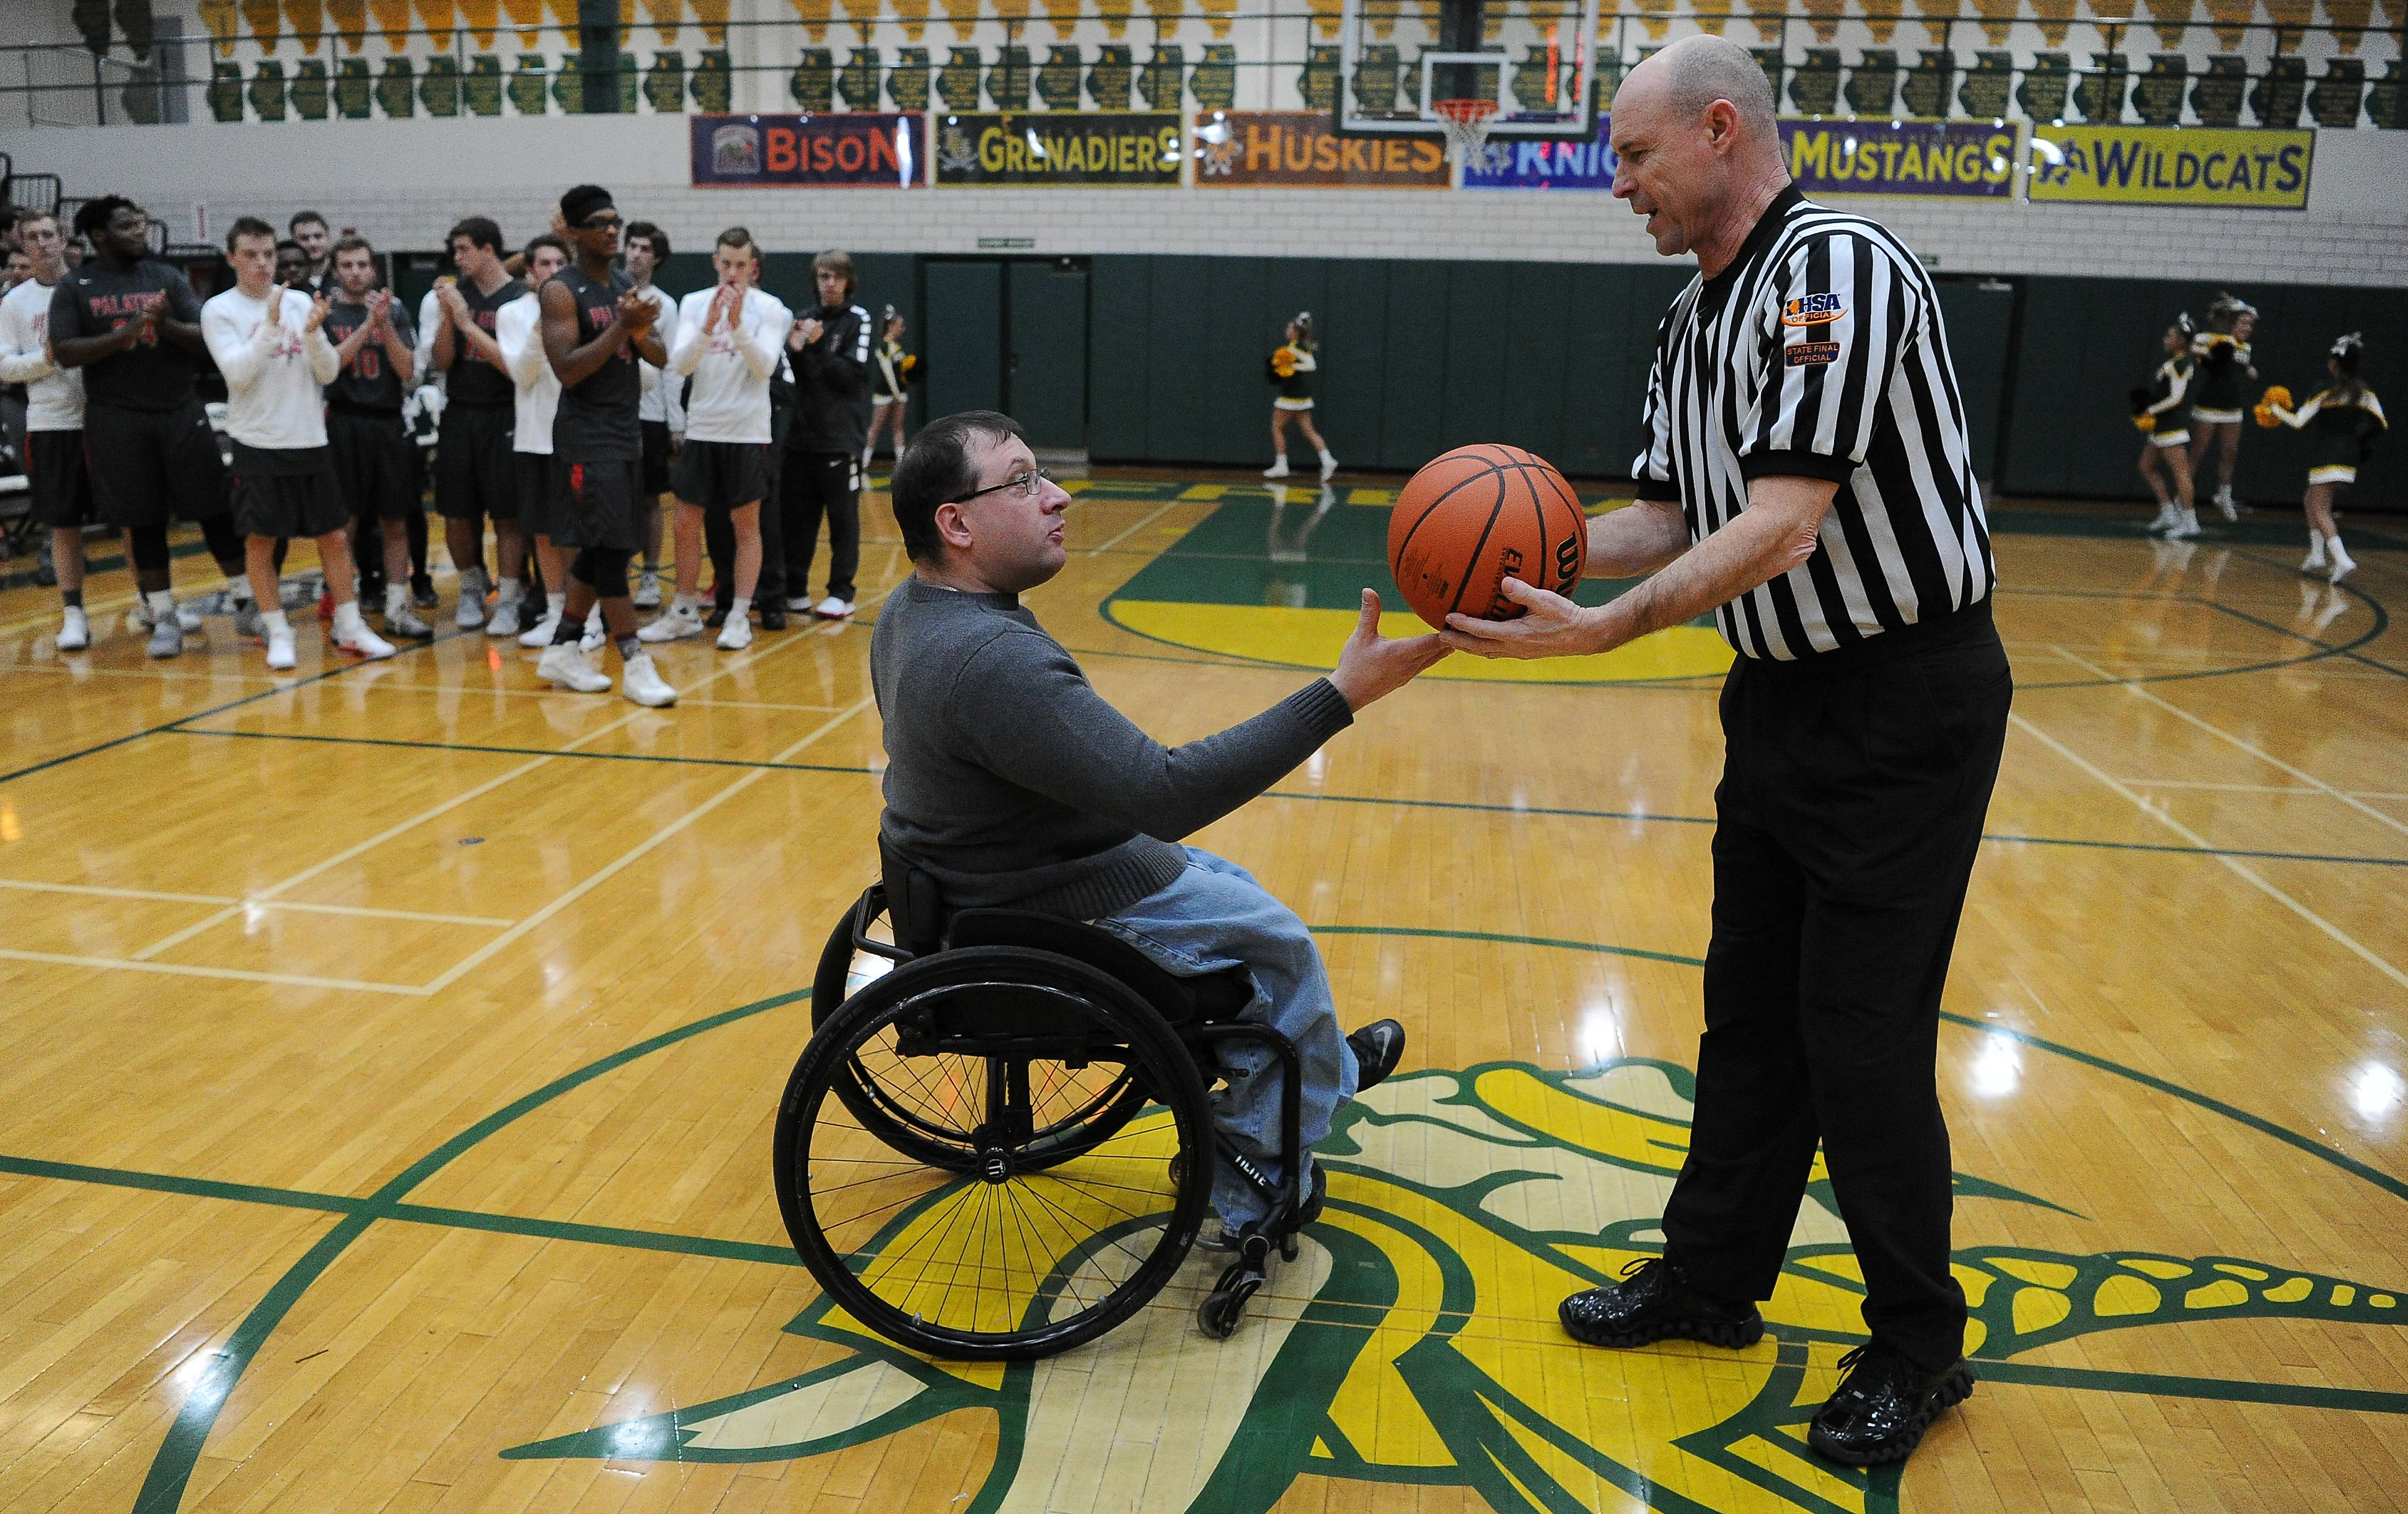 Jonathan Cregier presents the game ball to referee Tom Huster of Elmhurst in honor of his father, the late Ron Cregier, who was a longtime assistant coach for Fremd's basketball program. The presentation was at the boys varsity basketball game between Fremd and visiting Palatine.